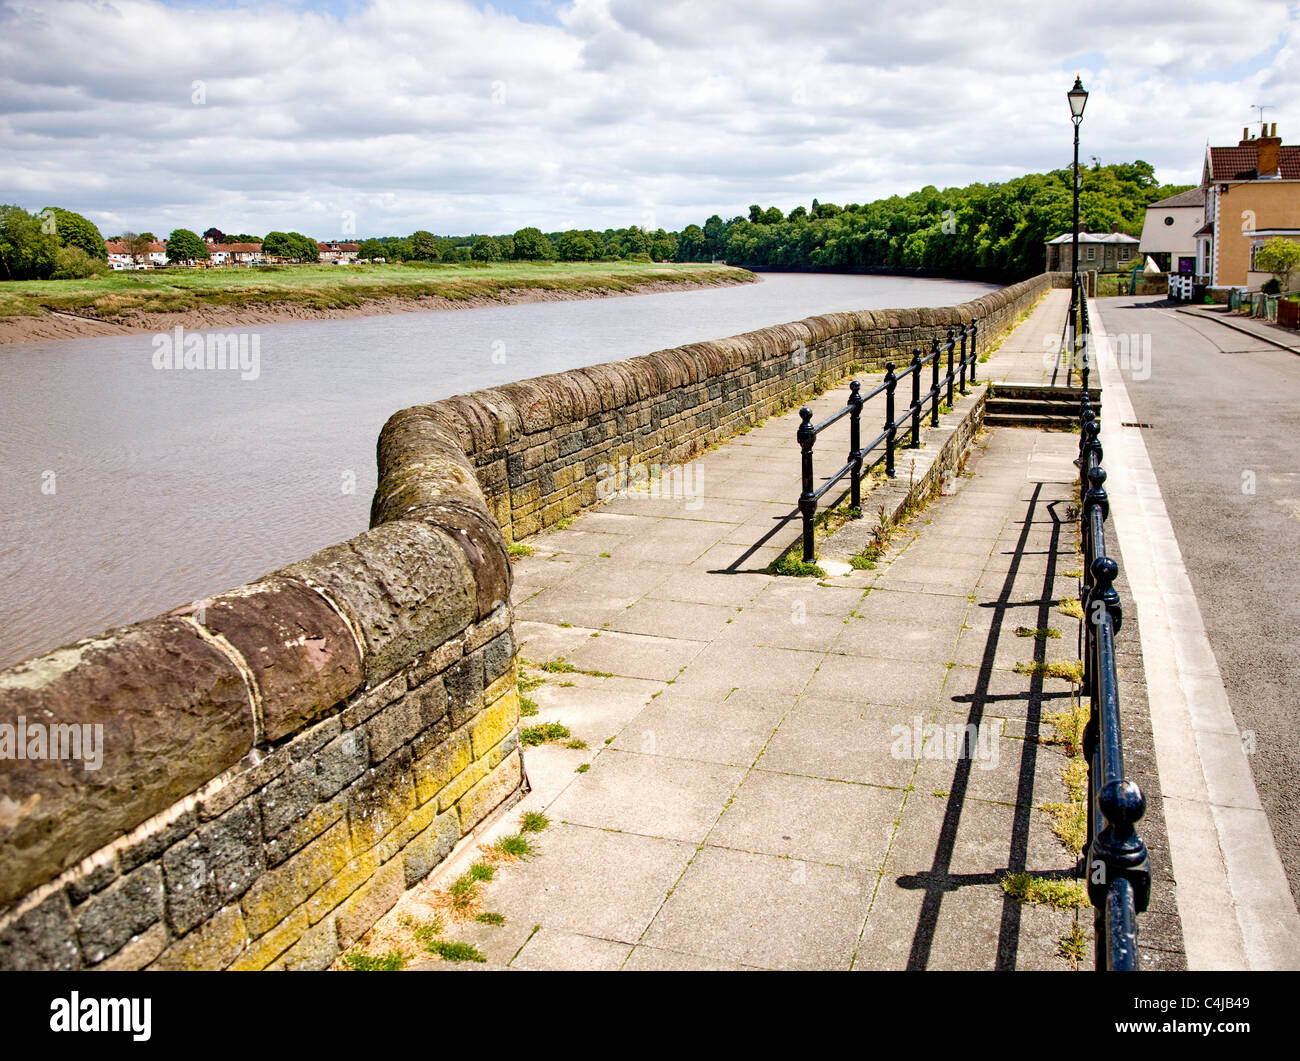 The sea wall promenade and the river Avon at Pill near Bristol - Stock Image